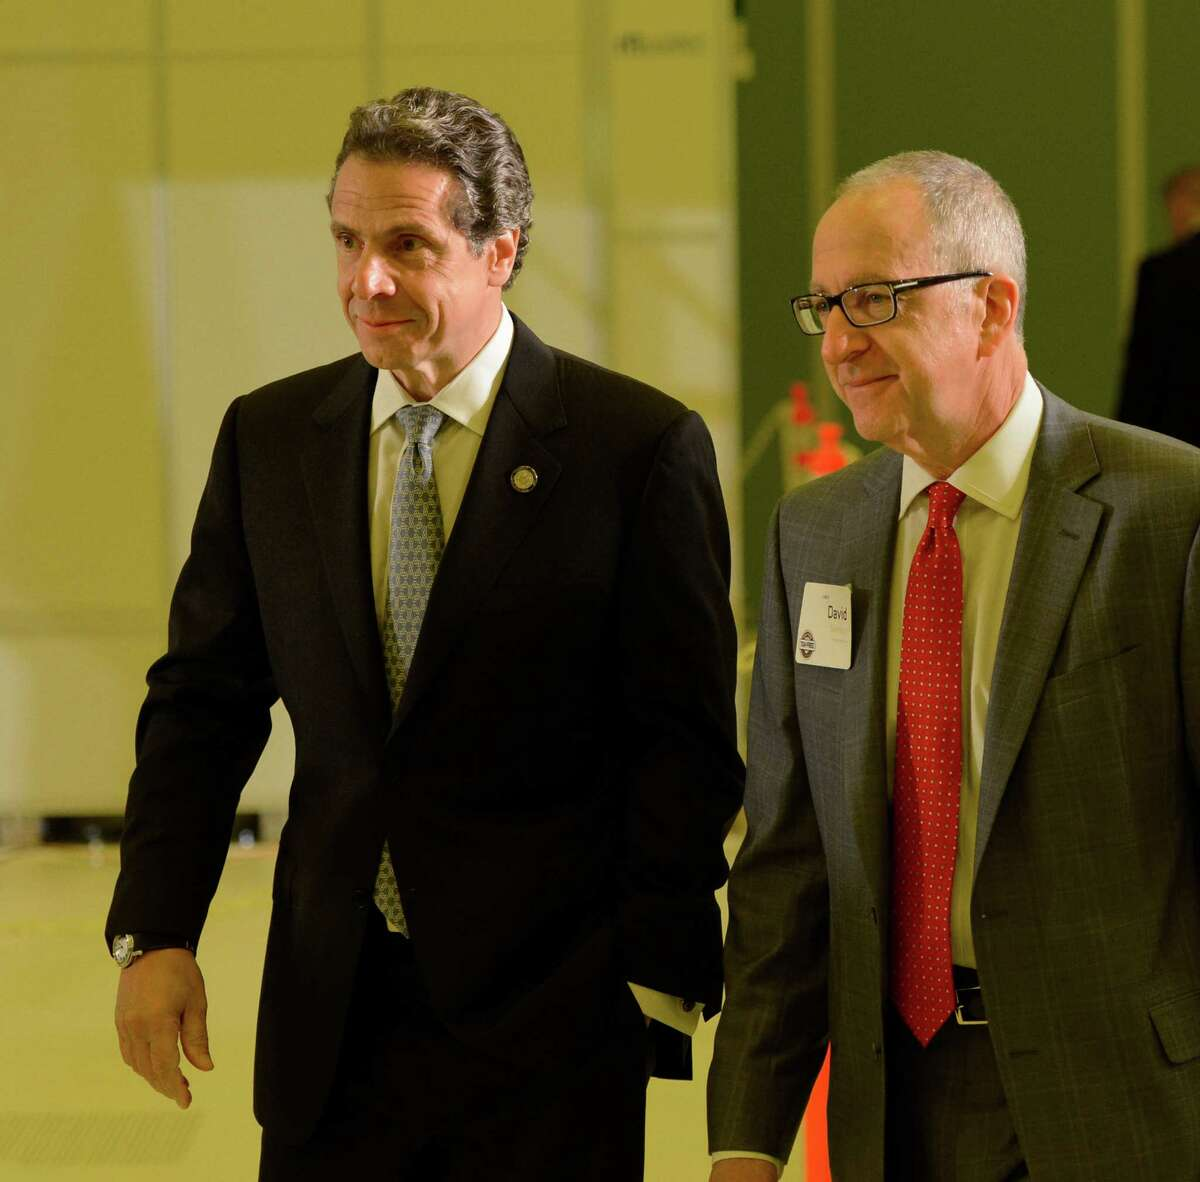 Governor Andrew Cuomo, left, is joined by Cornell president David Skorton as he continues his speaking engagements for his Tax-Free intitiative June 3, 2013, at the College of Nanoscale Science and Engineering in Albany, N.Y. (Skip Dickstein/Times Union)